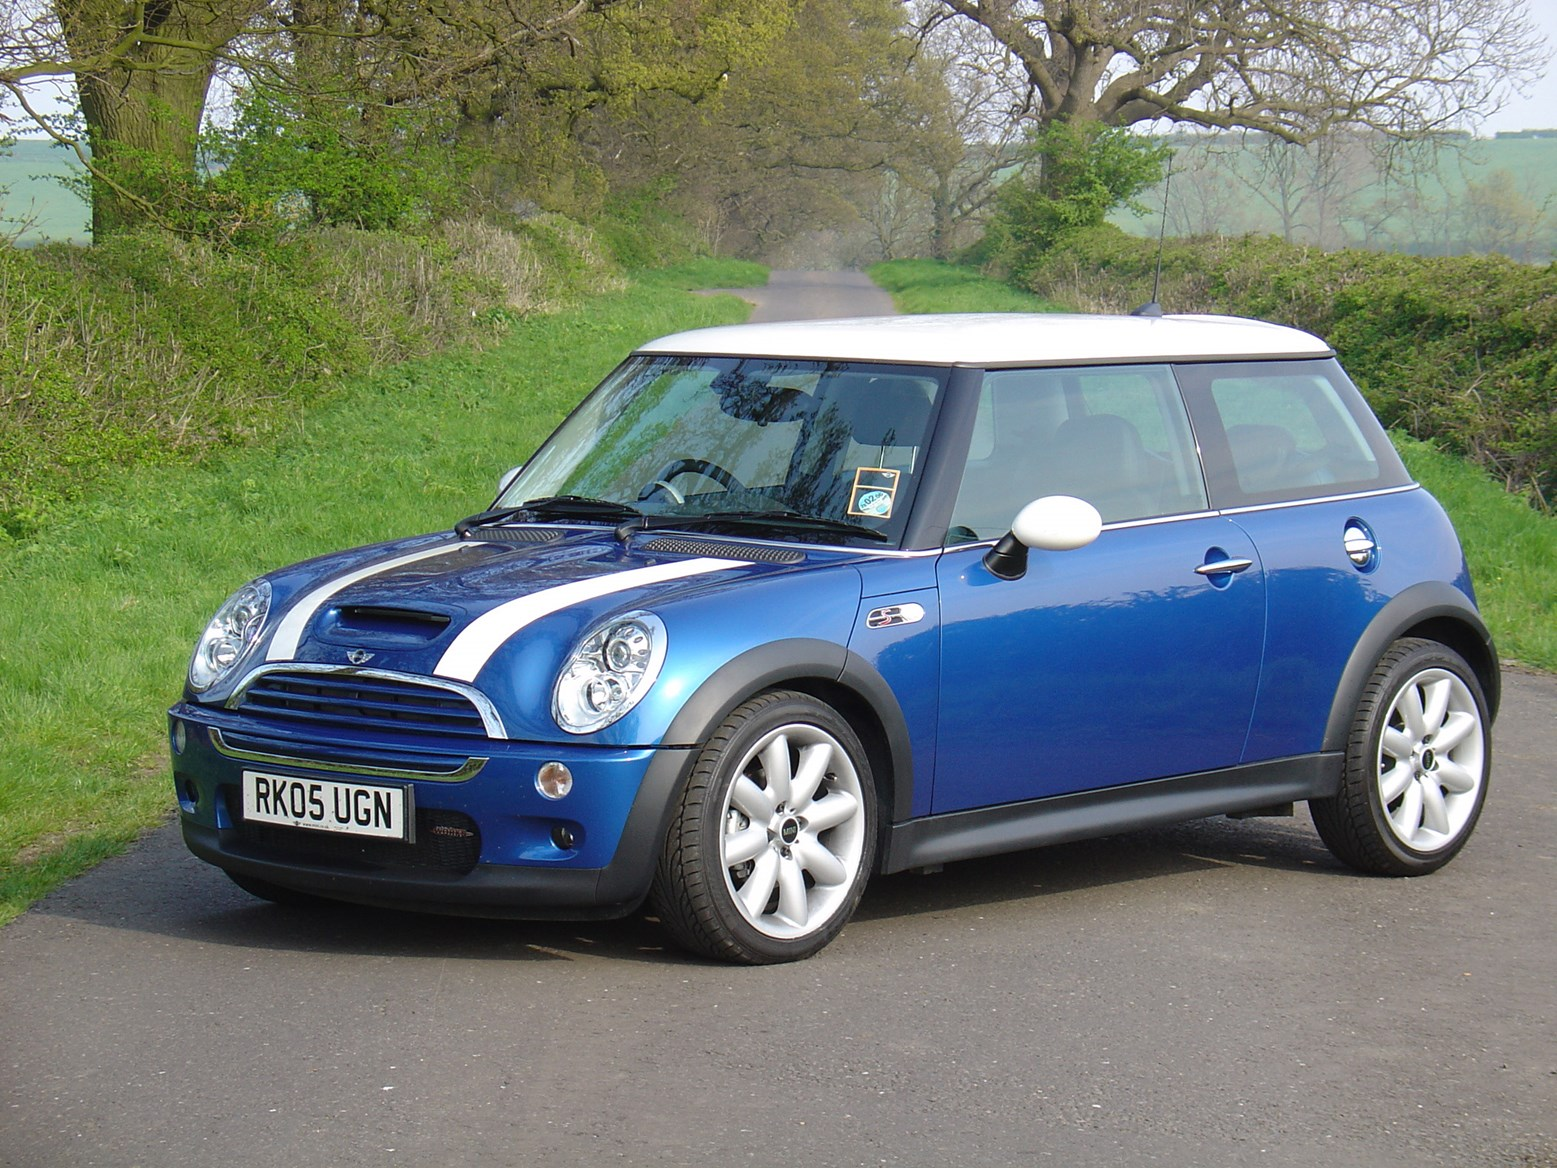 Mini Cooper Paceman Review >> MINI Cooper S Hatchback Review (2002 - 2006) | Parkers